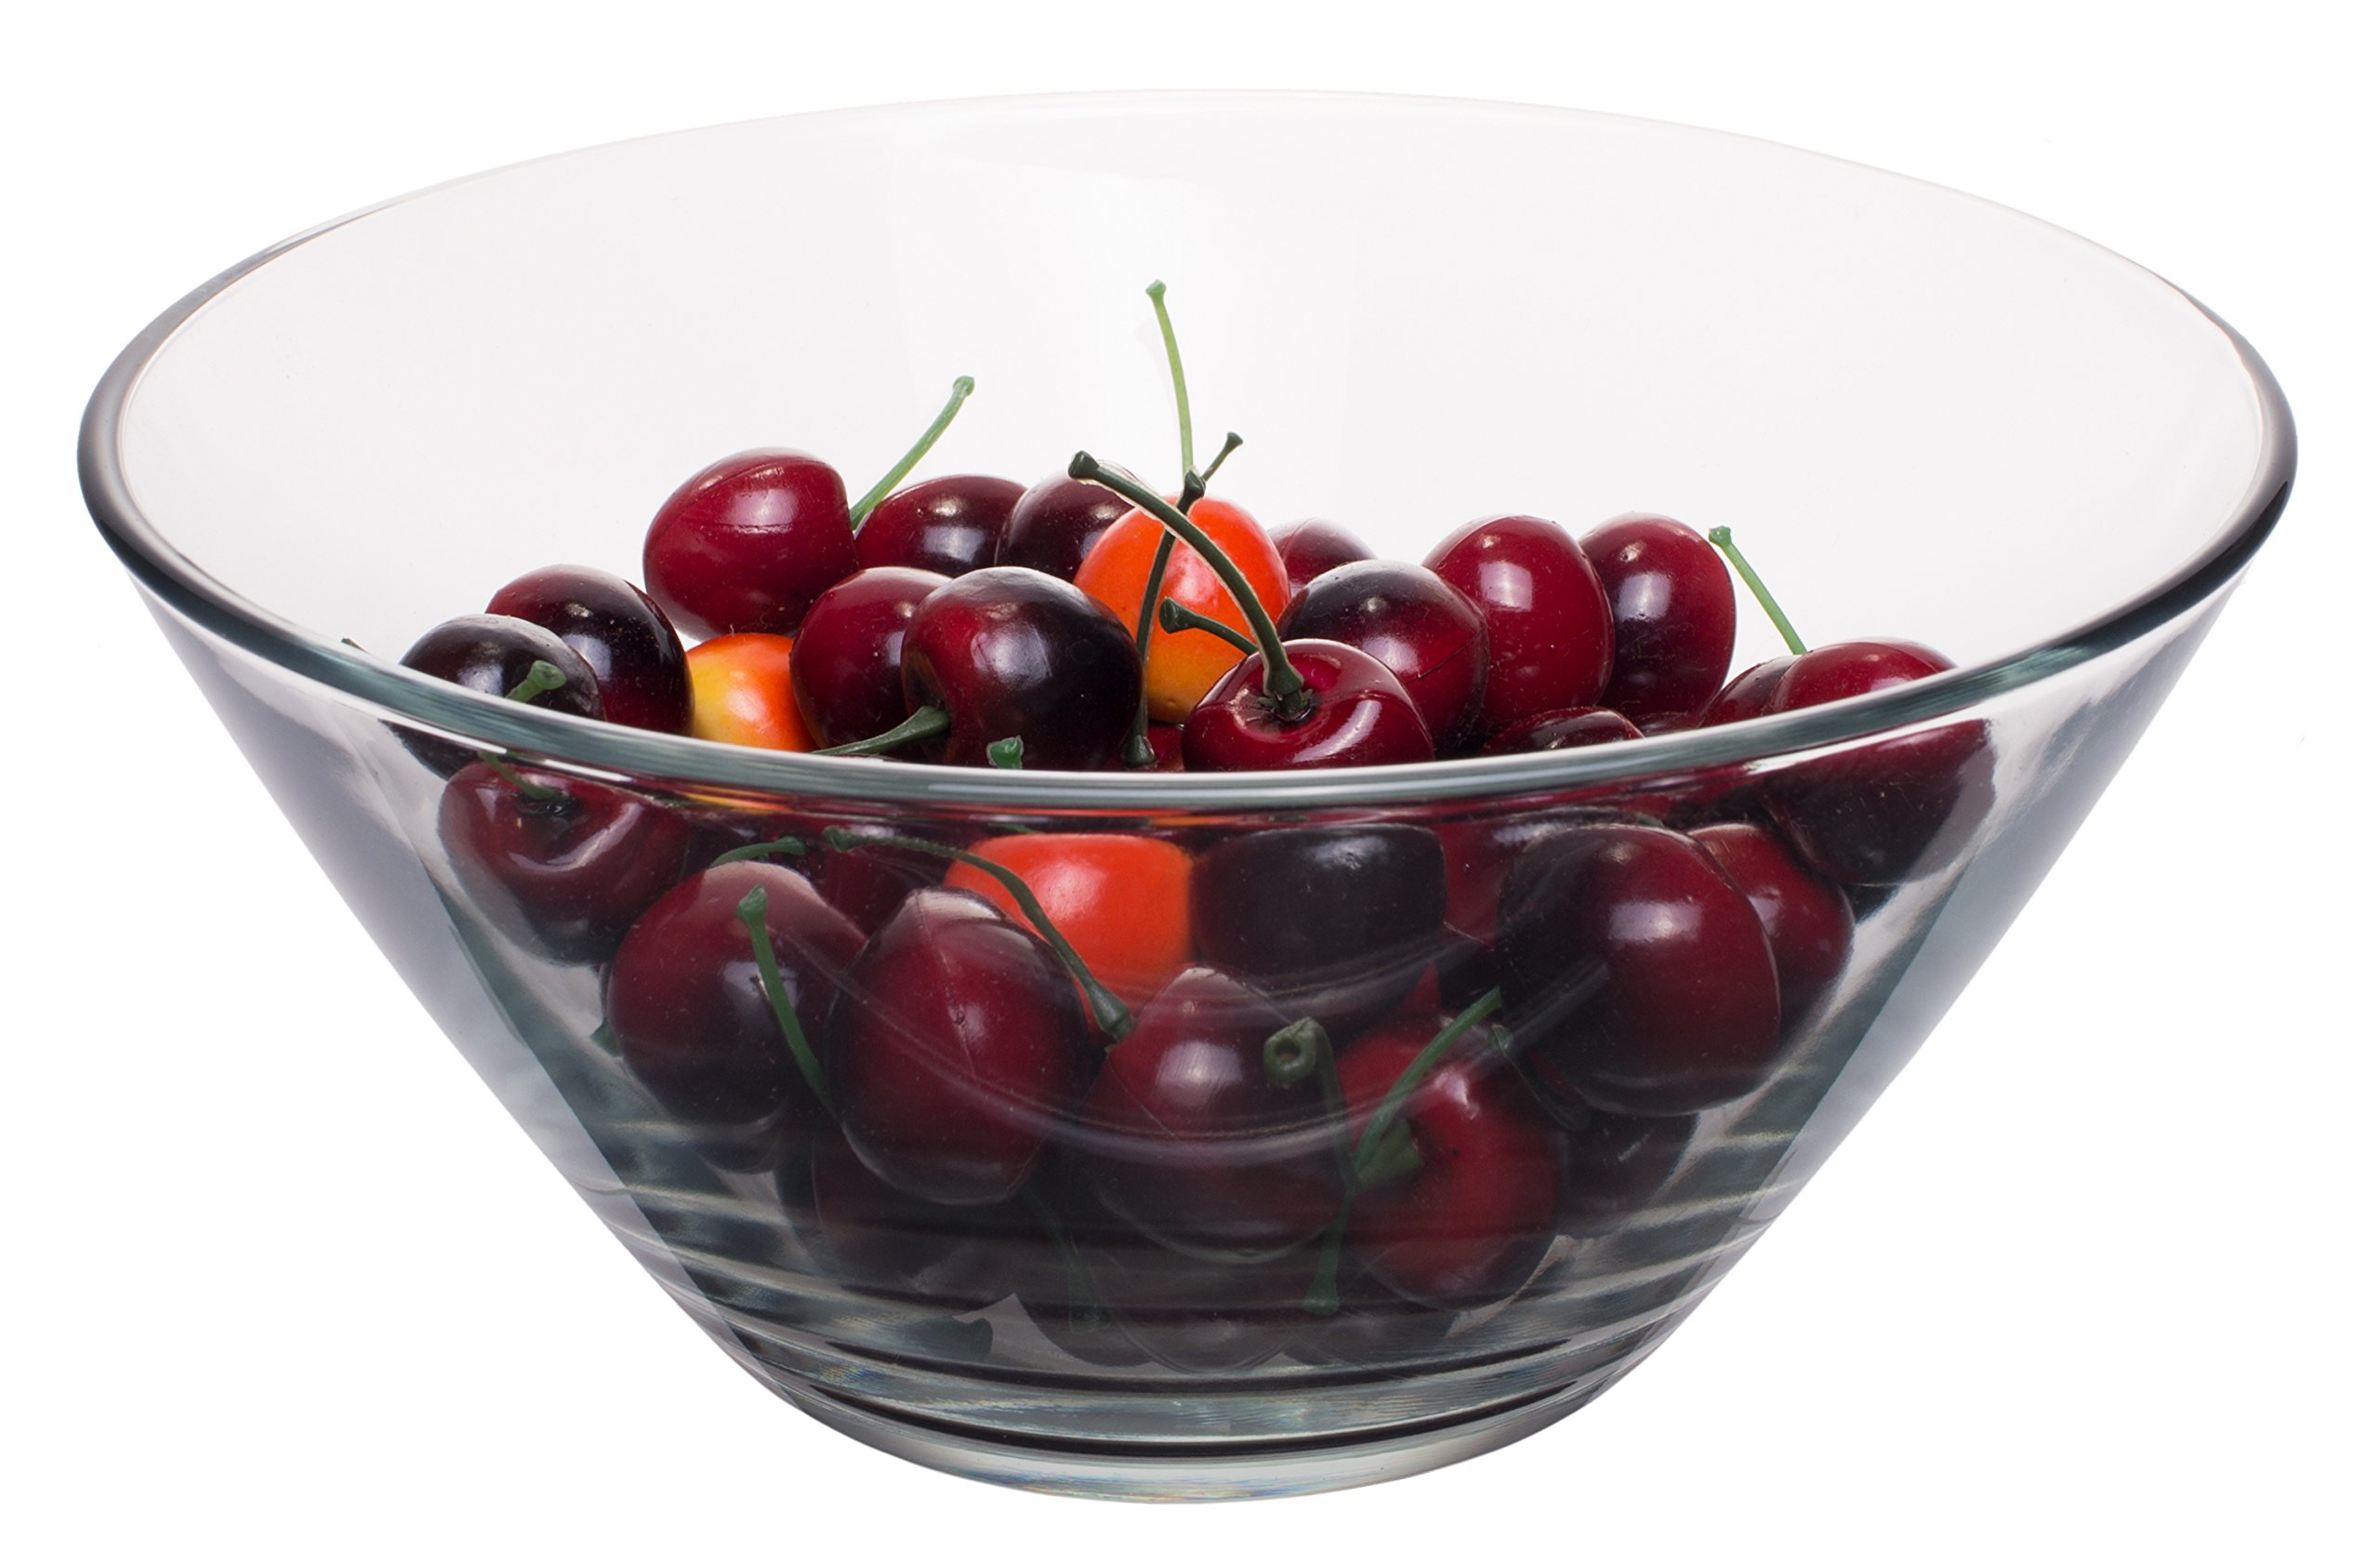 Medium Round Clear Glass Salad Serving and Mixing Bowl, 2.27 Quart